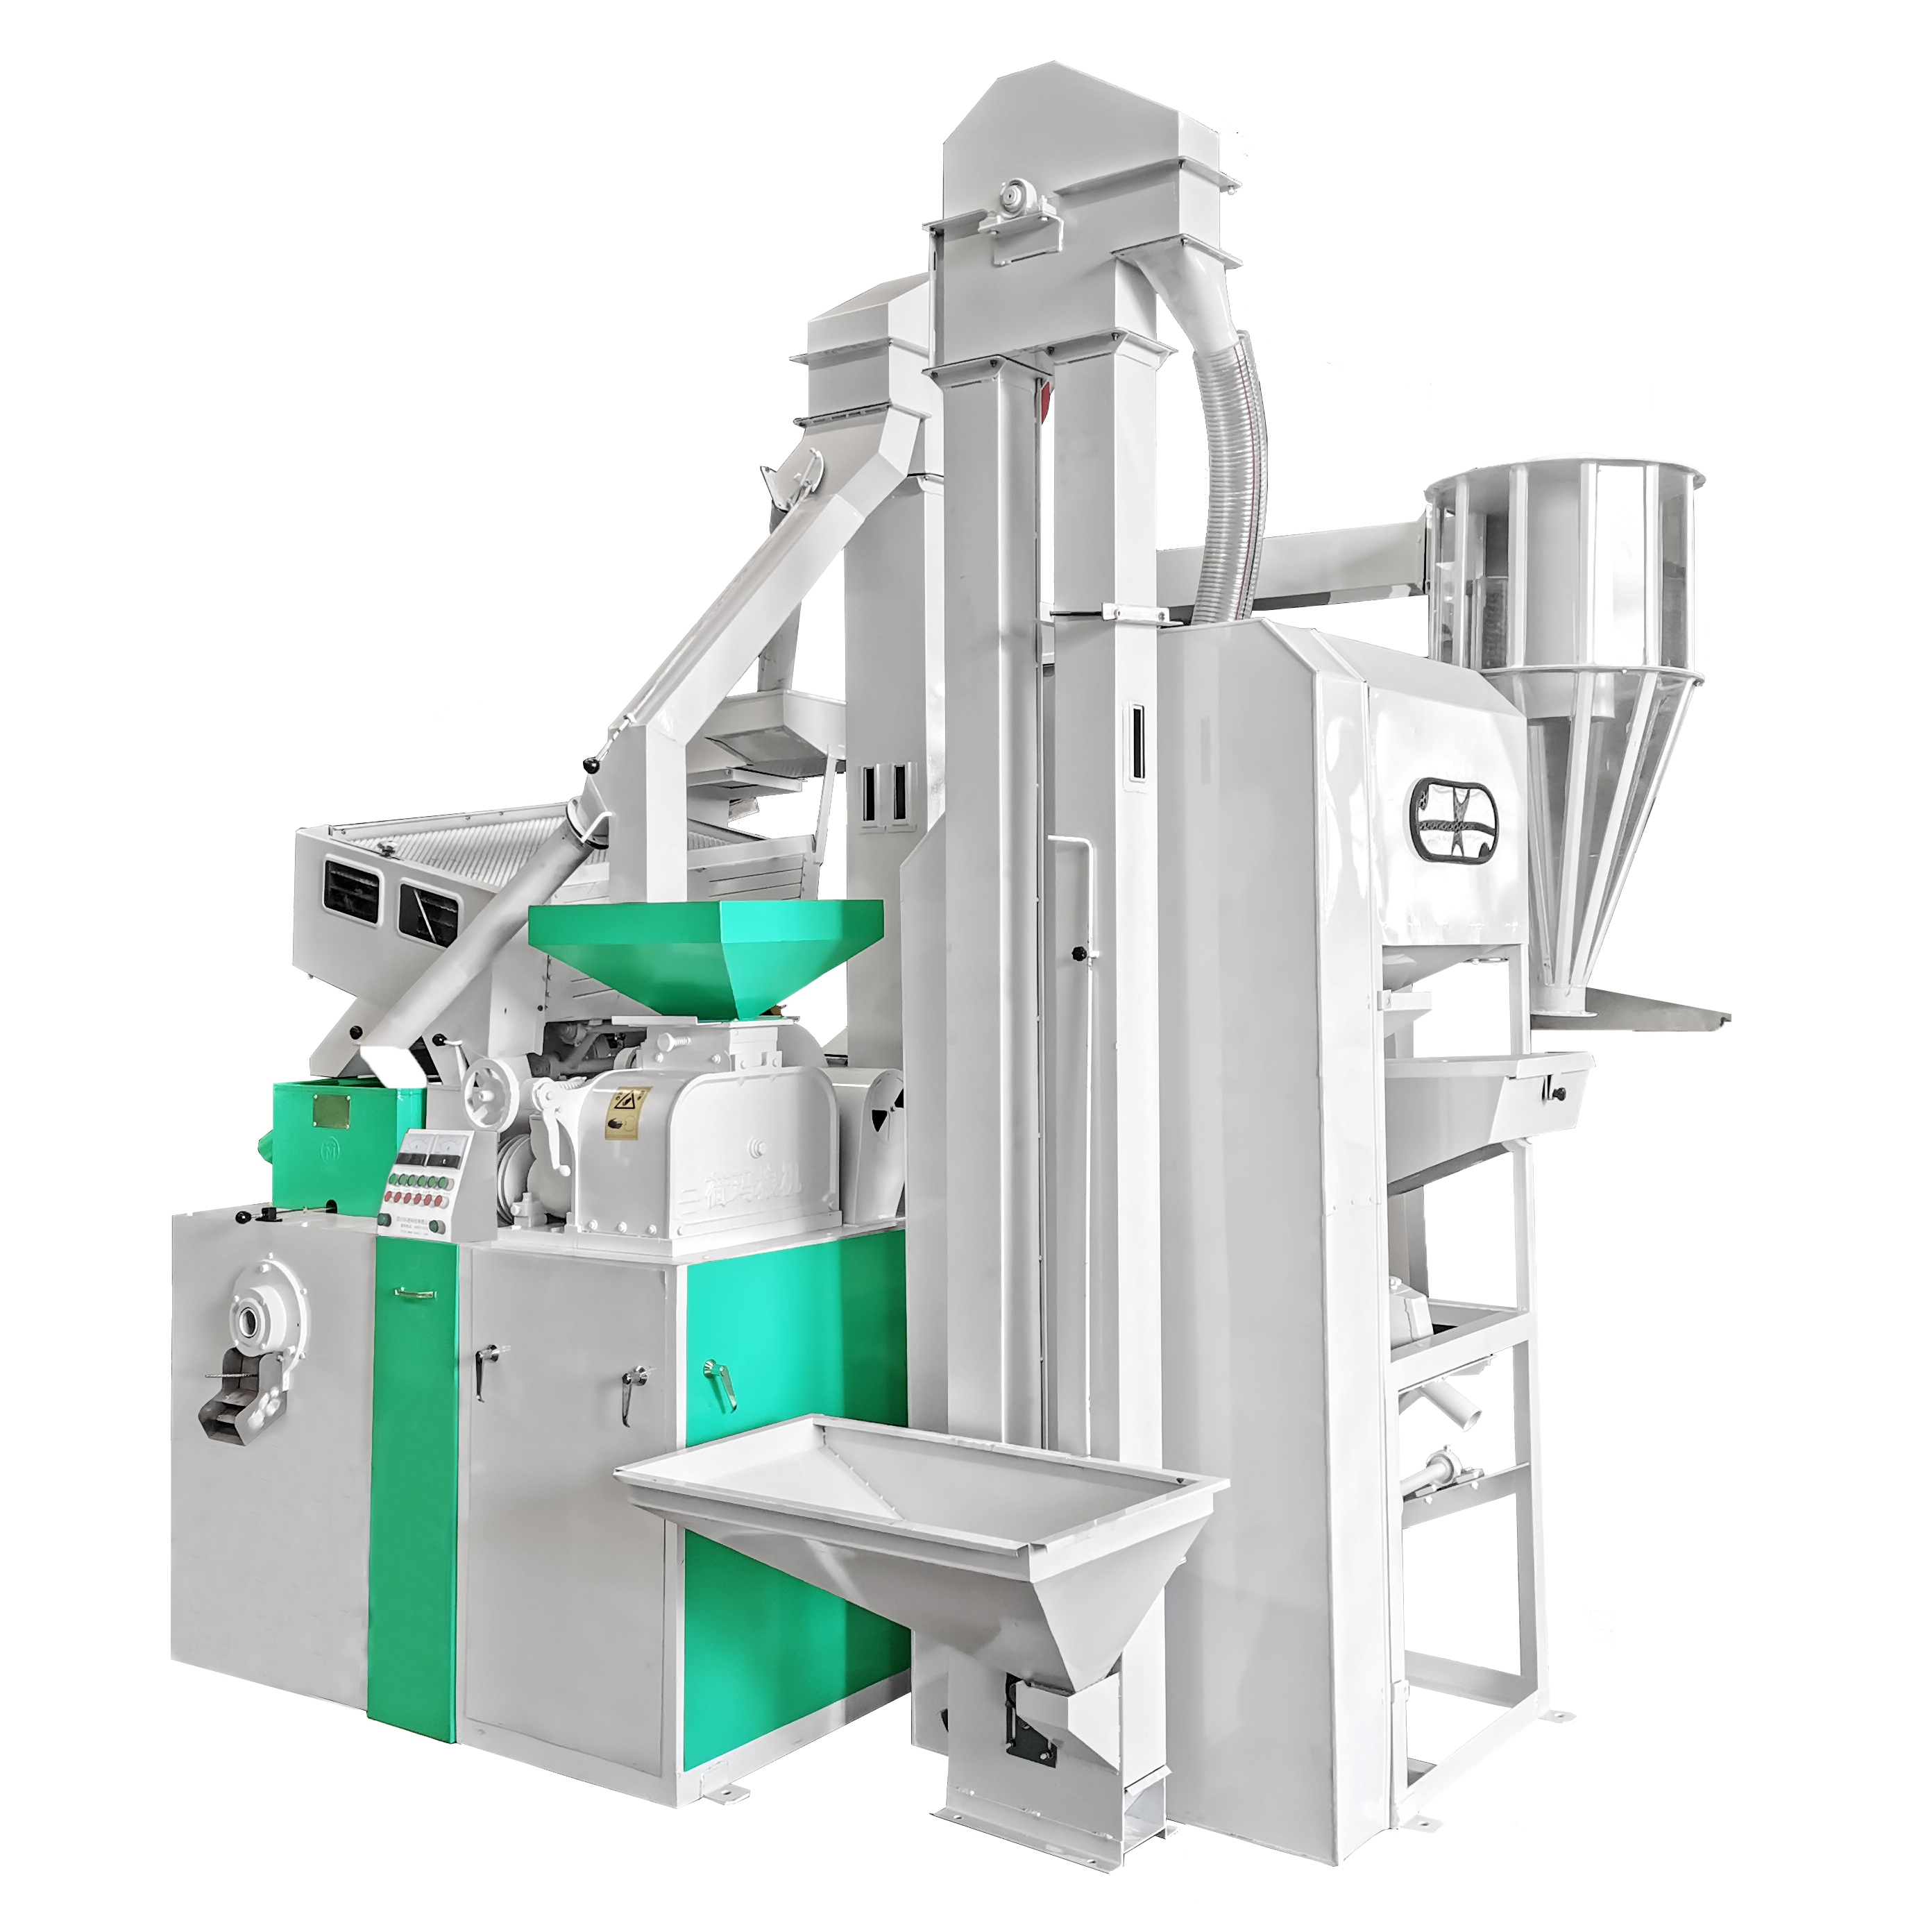 HELI Price 20 Ton Capacity Combined Full Automatic Auto Rice Mill Plant Factory Line Machine Bangladesh Rice Mill